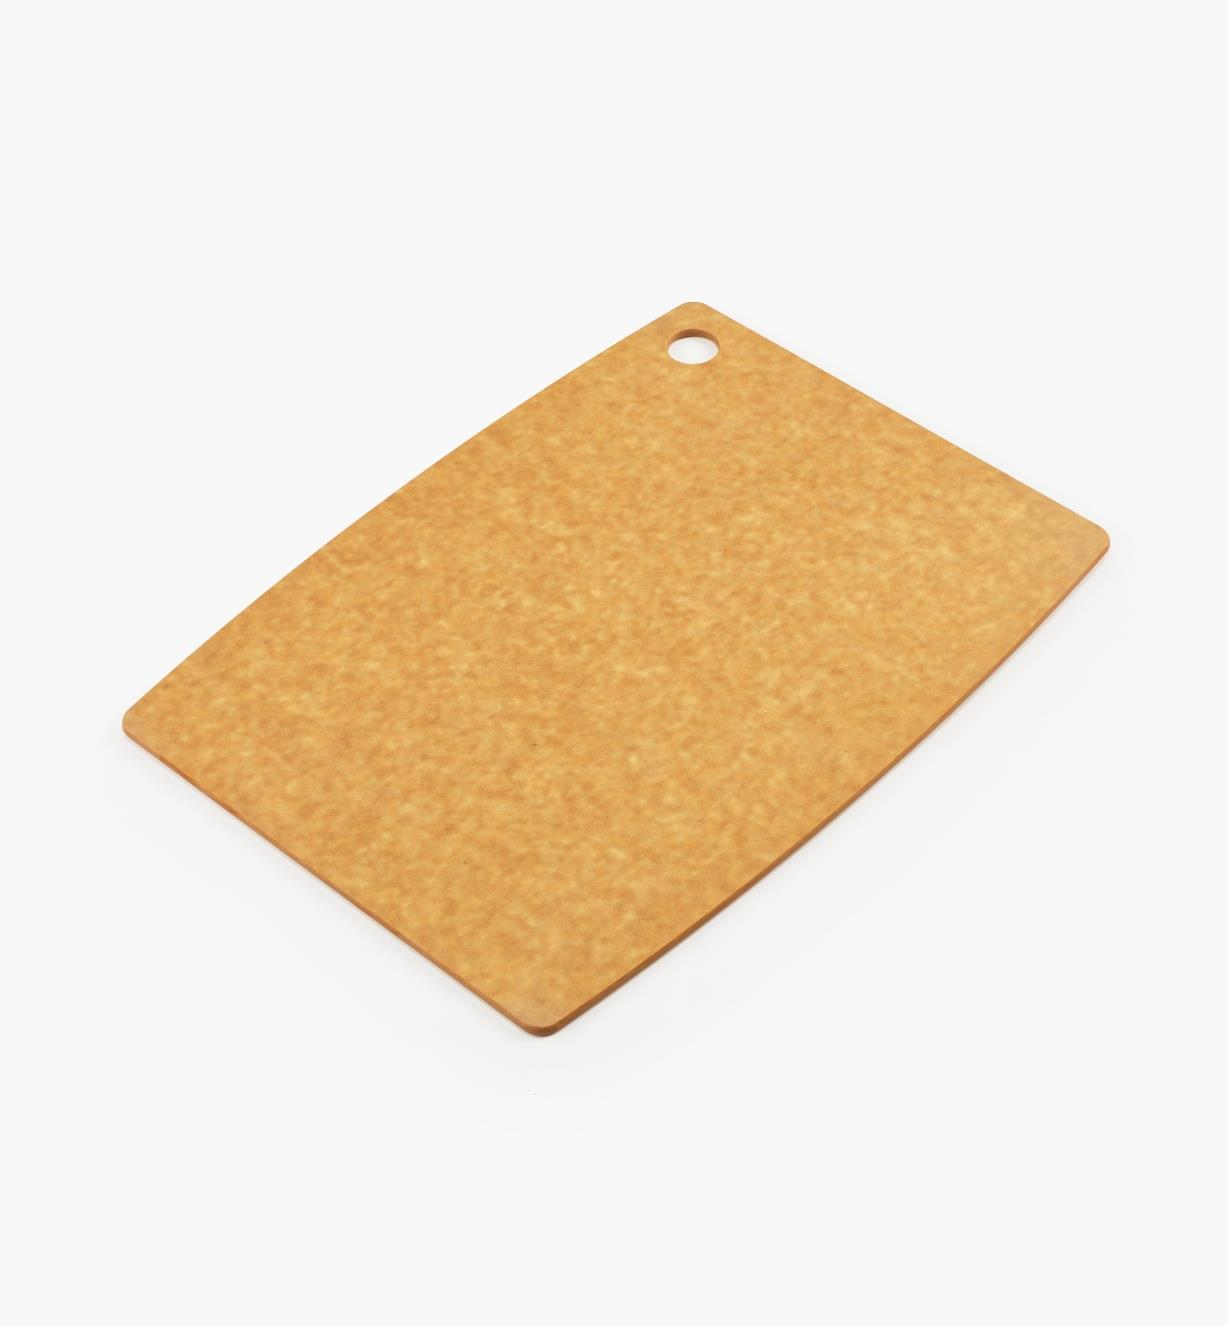 "EV183 - Kitchen Cutting Board, 17 1/2"" x 13"""